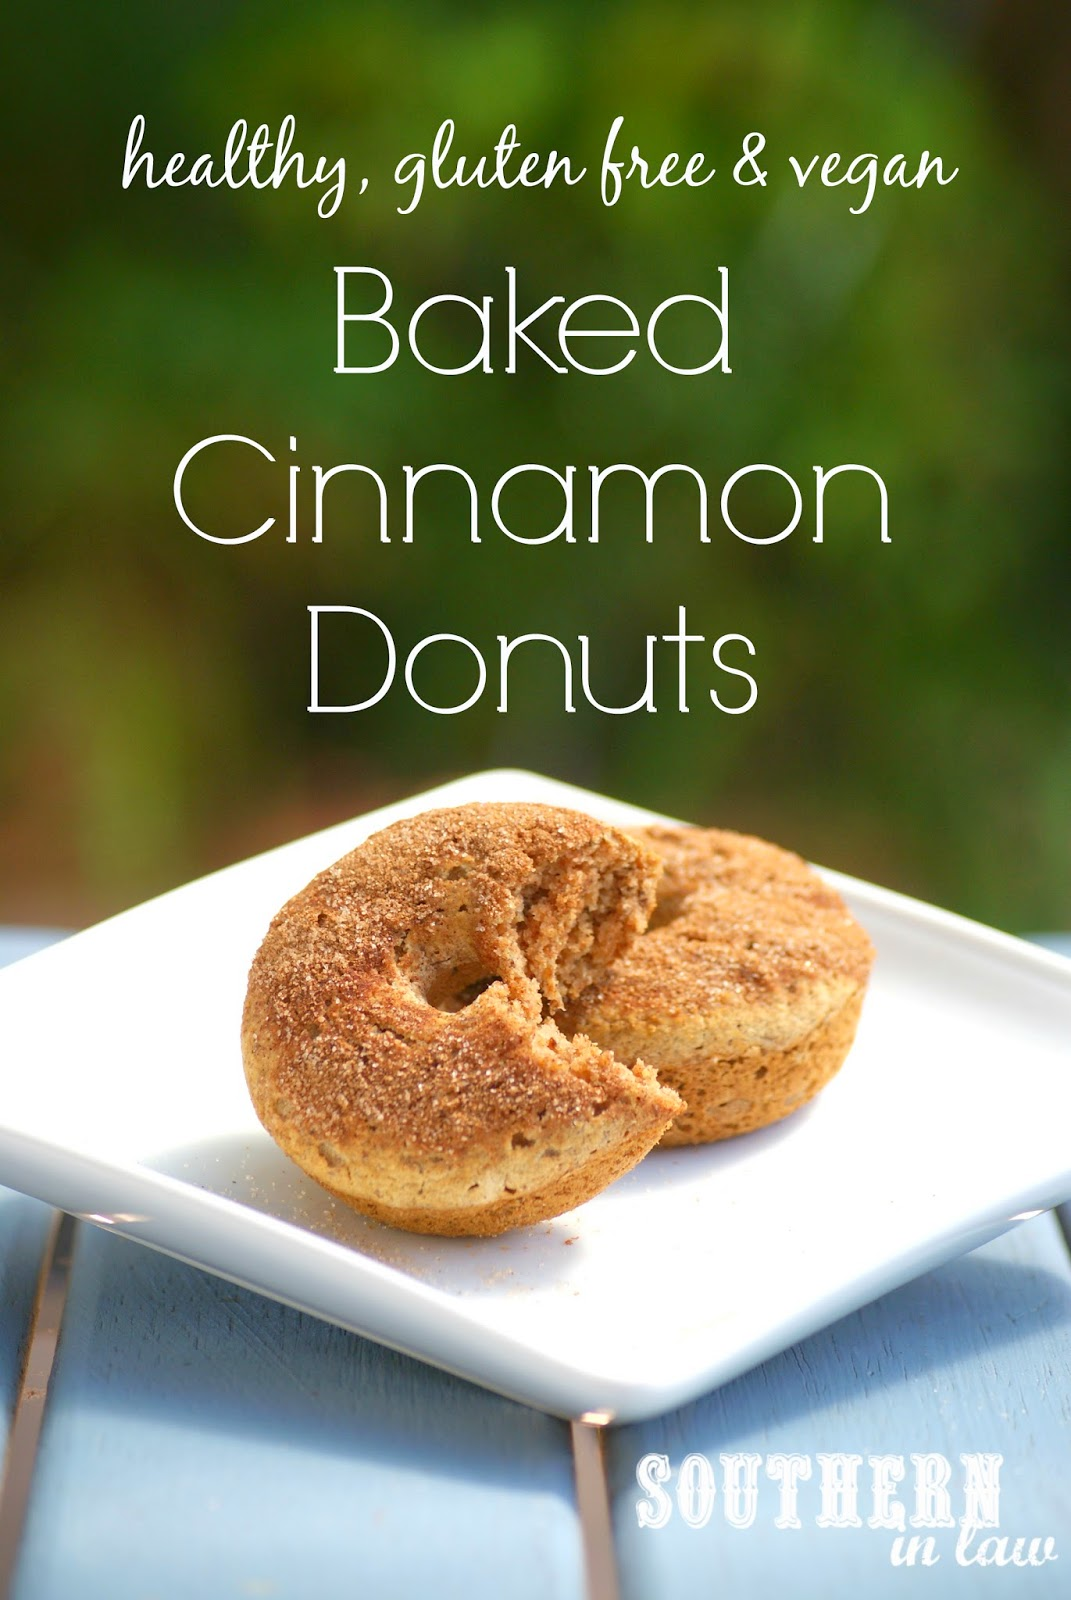 Southern In Law: Recipe: Healthy Vegan Baked Cinnamon Donuts